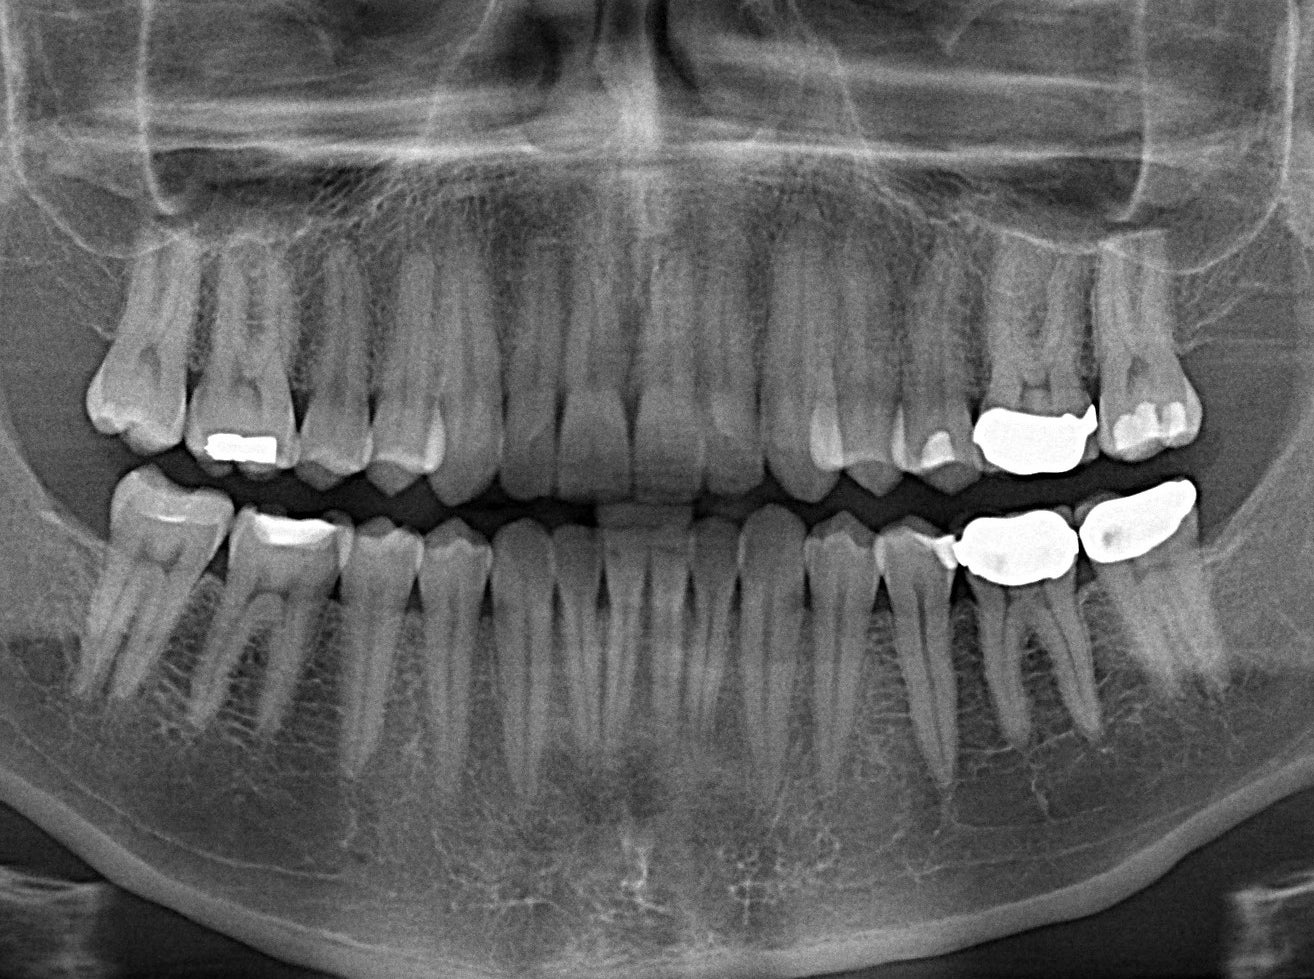 The End Of Root Canals?